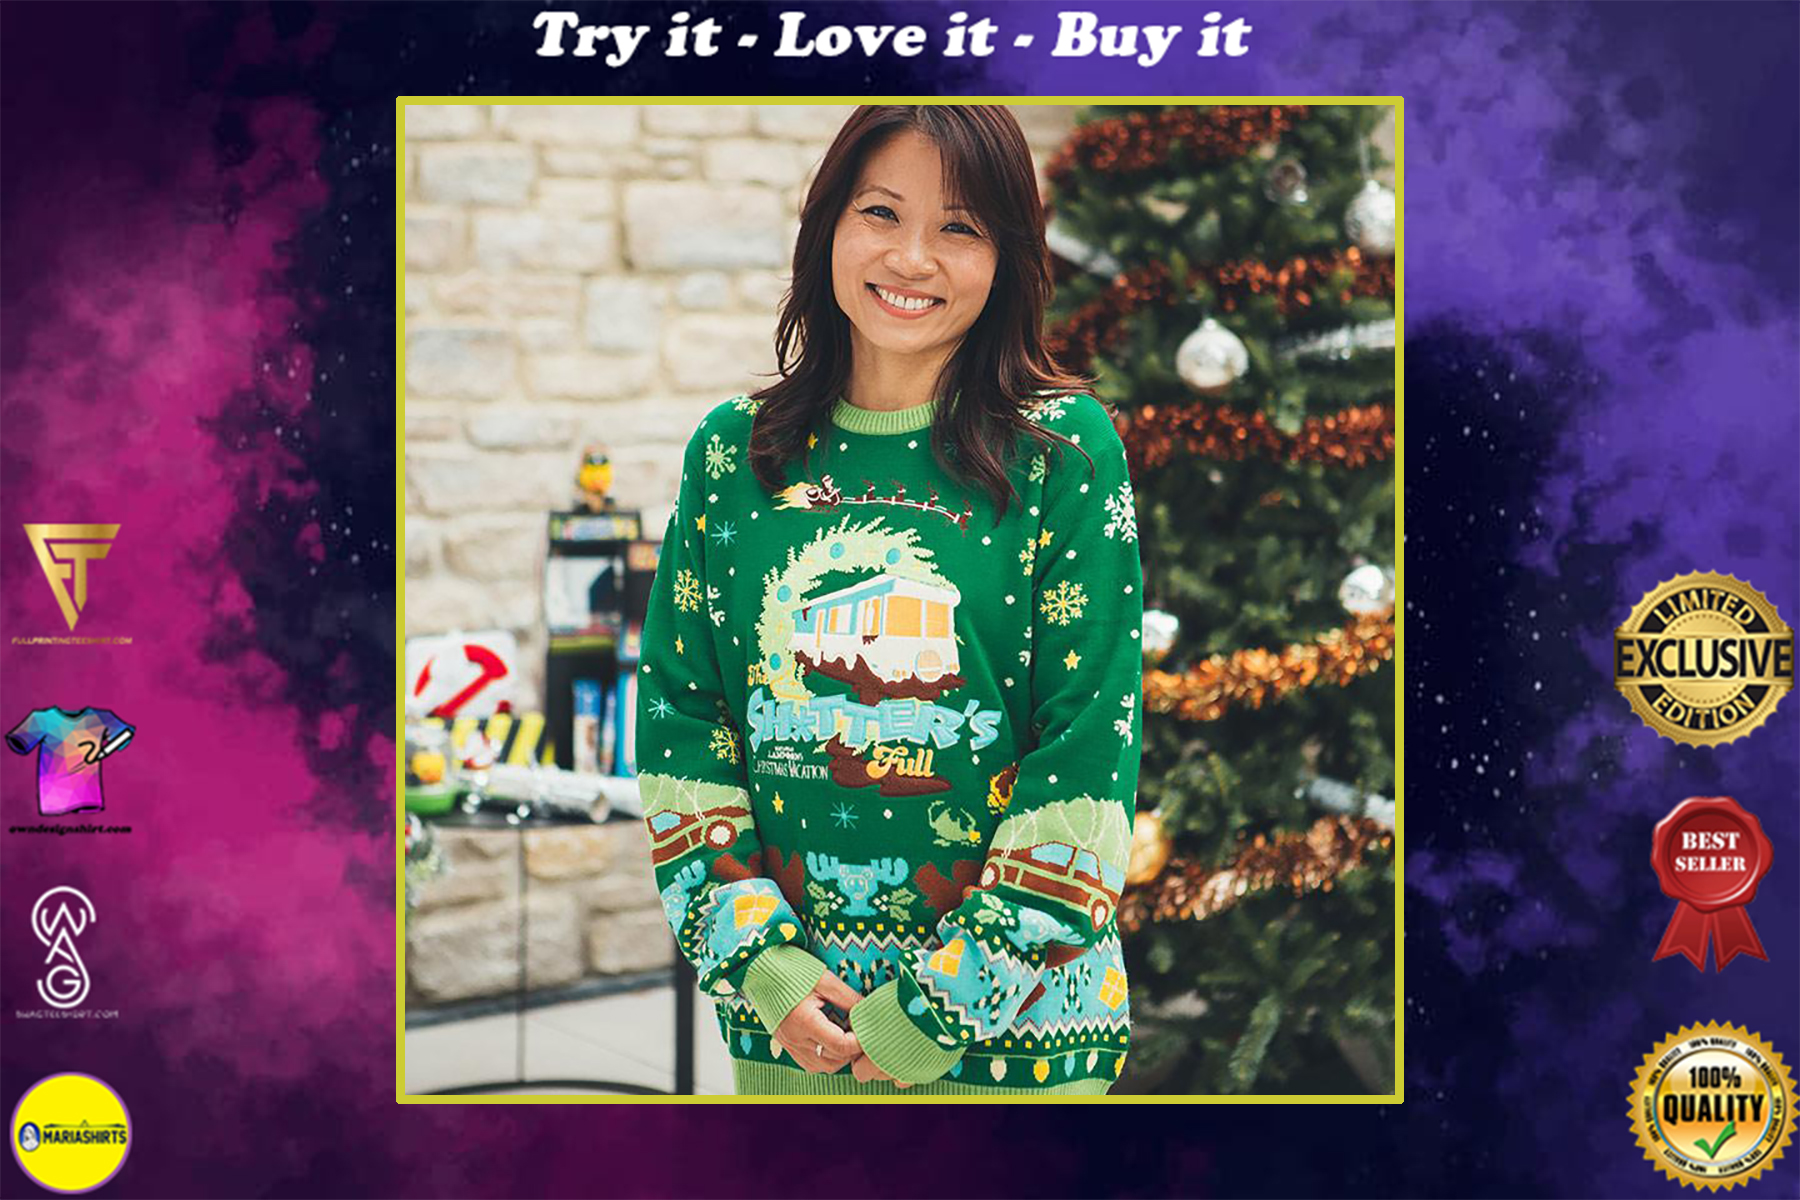 national lampoons christmas vacation all over printed ugly christmas sweater